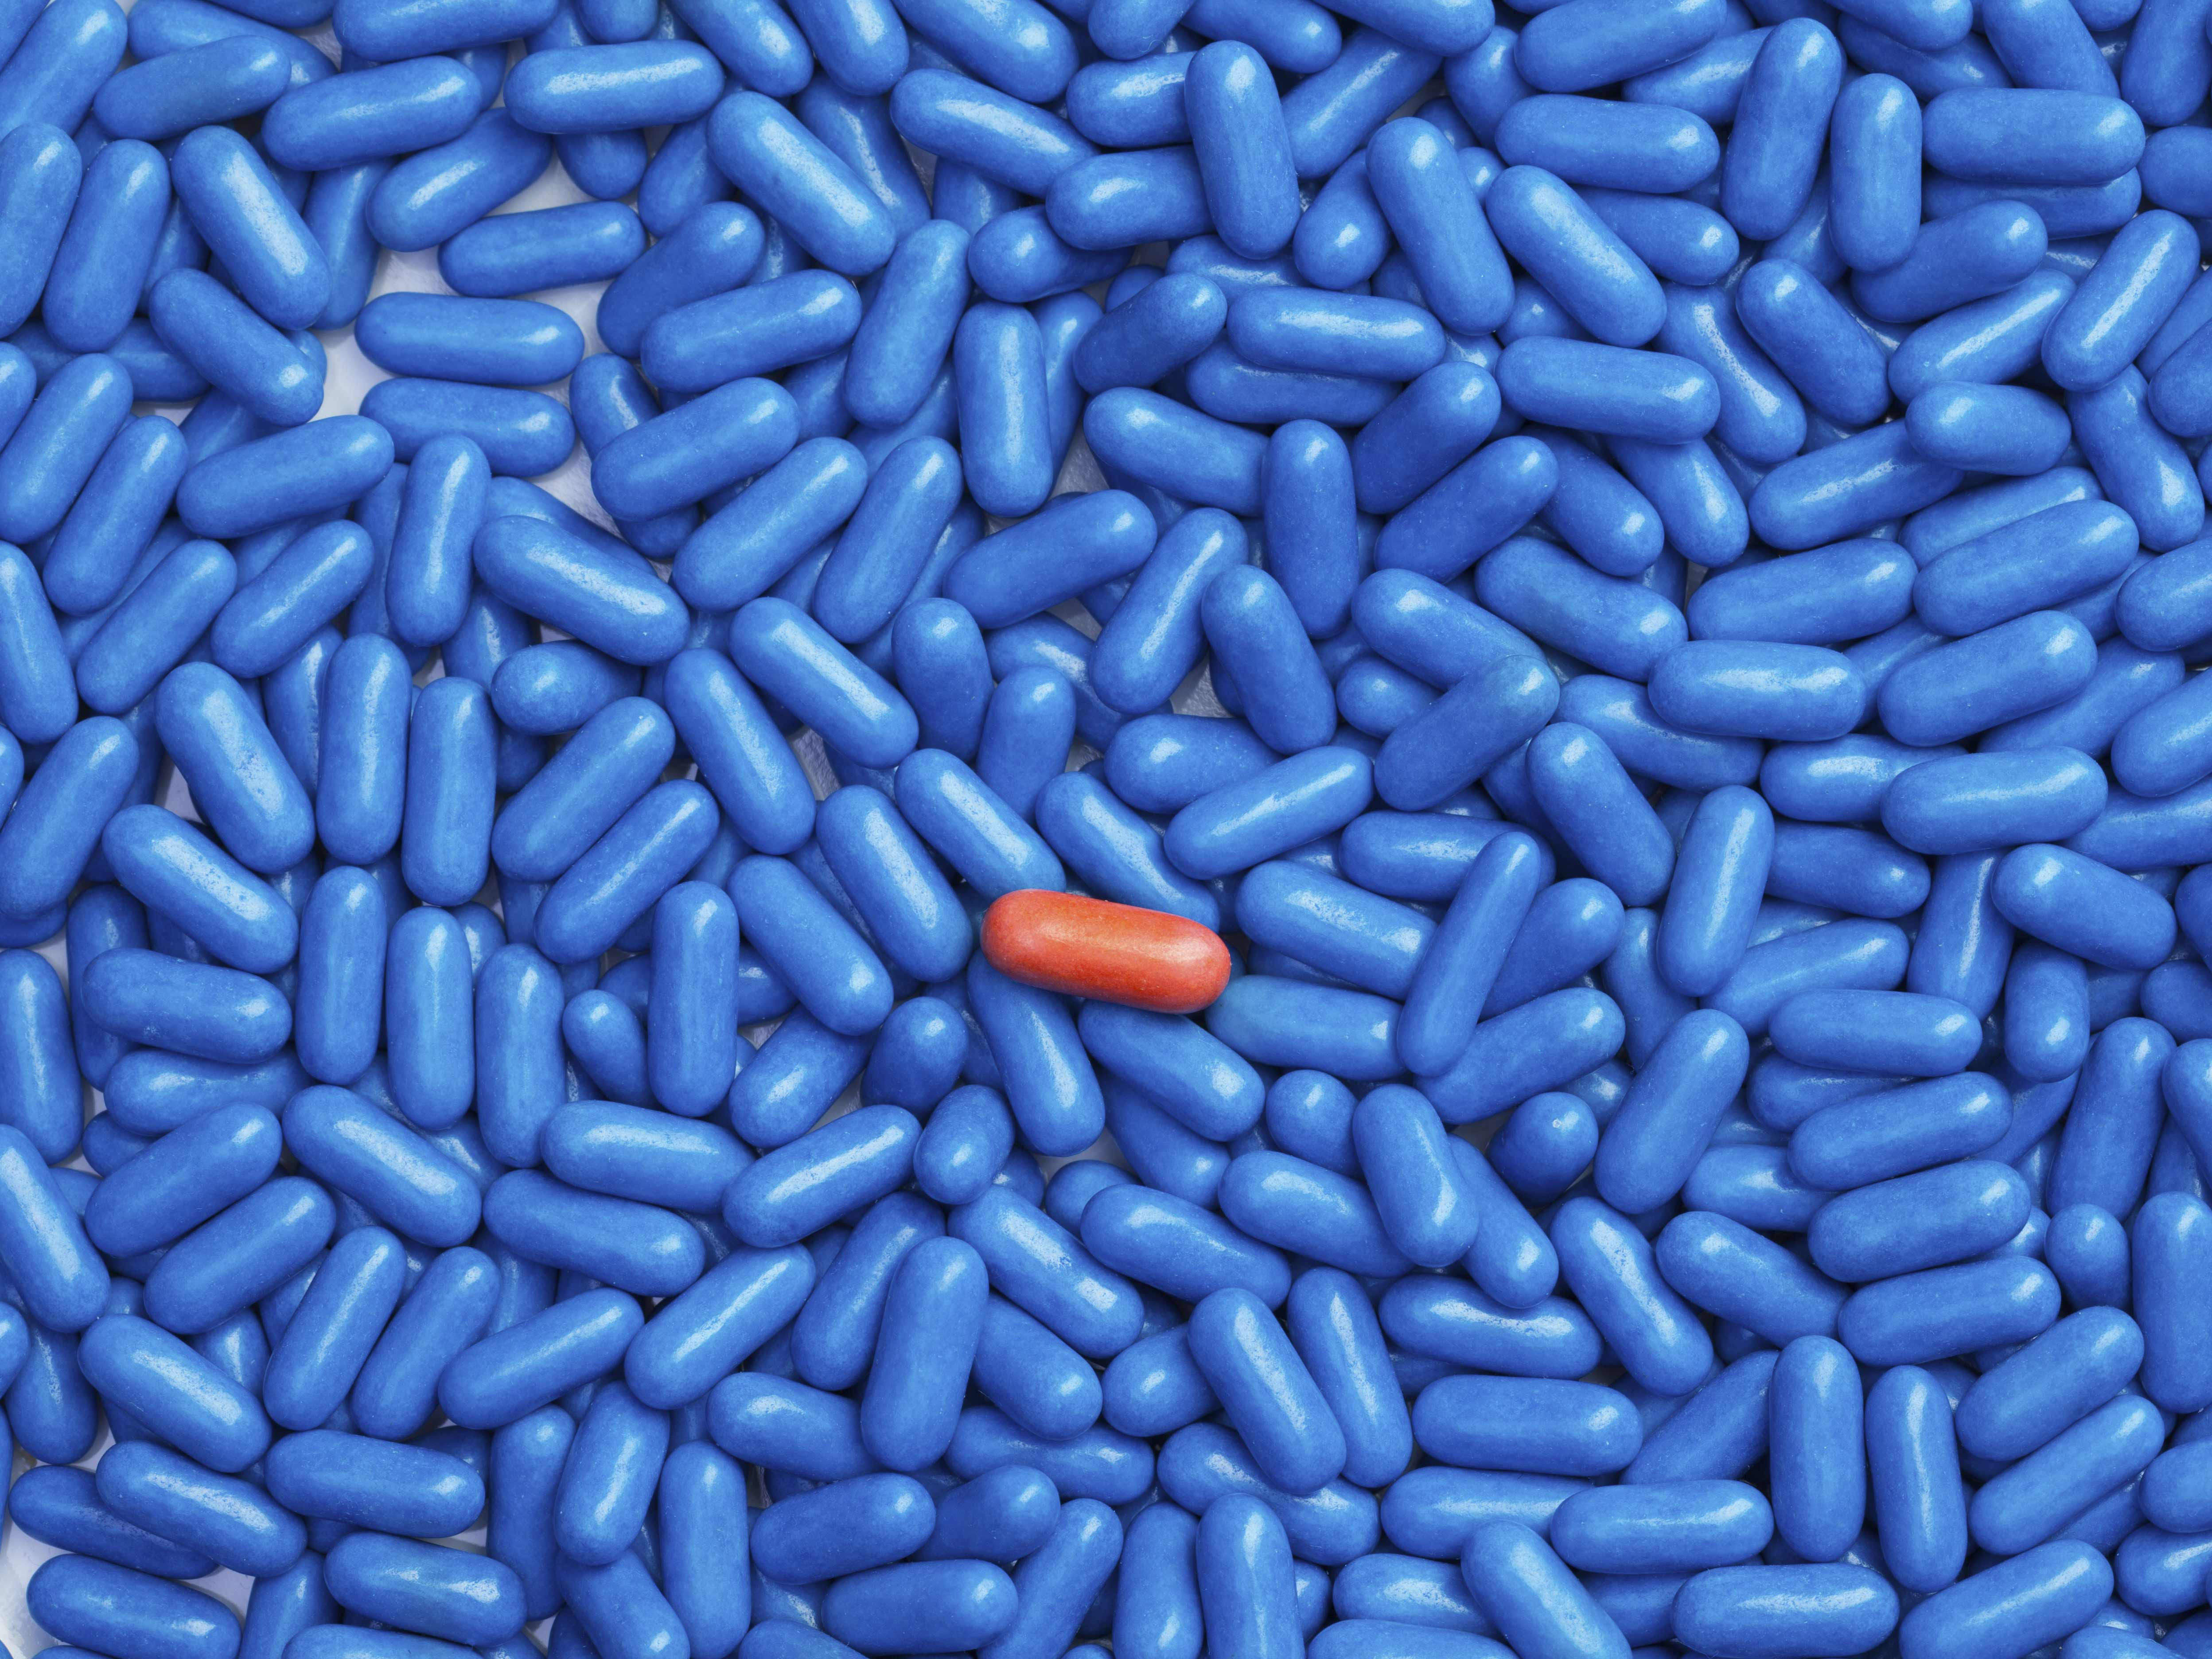 Vitamin may solve problem of the little blue pill